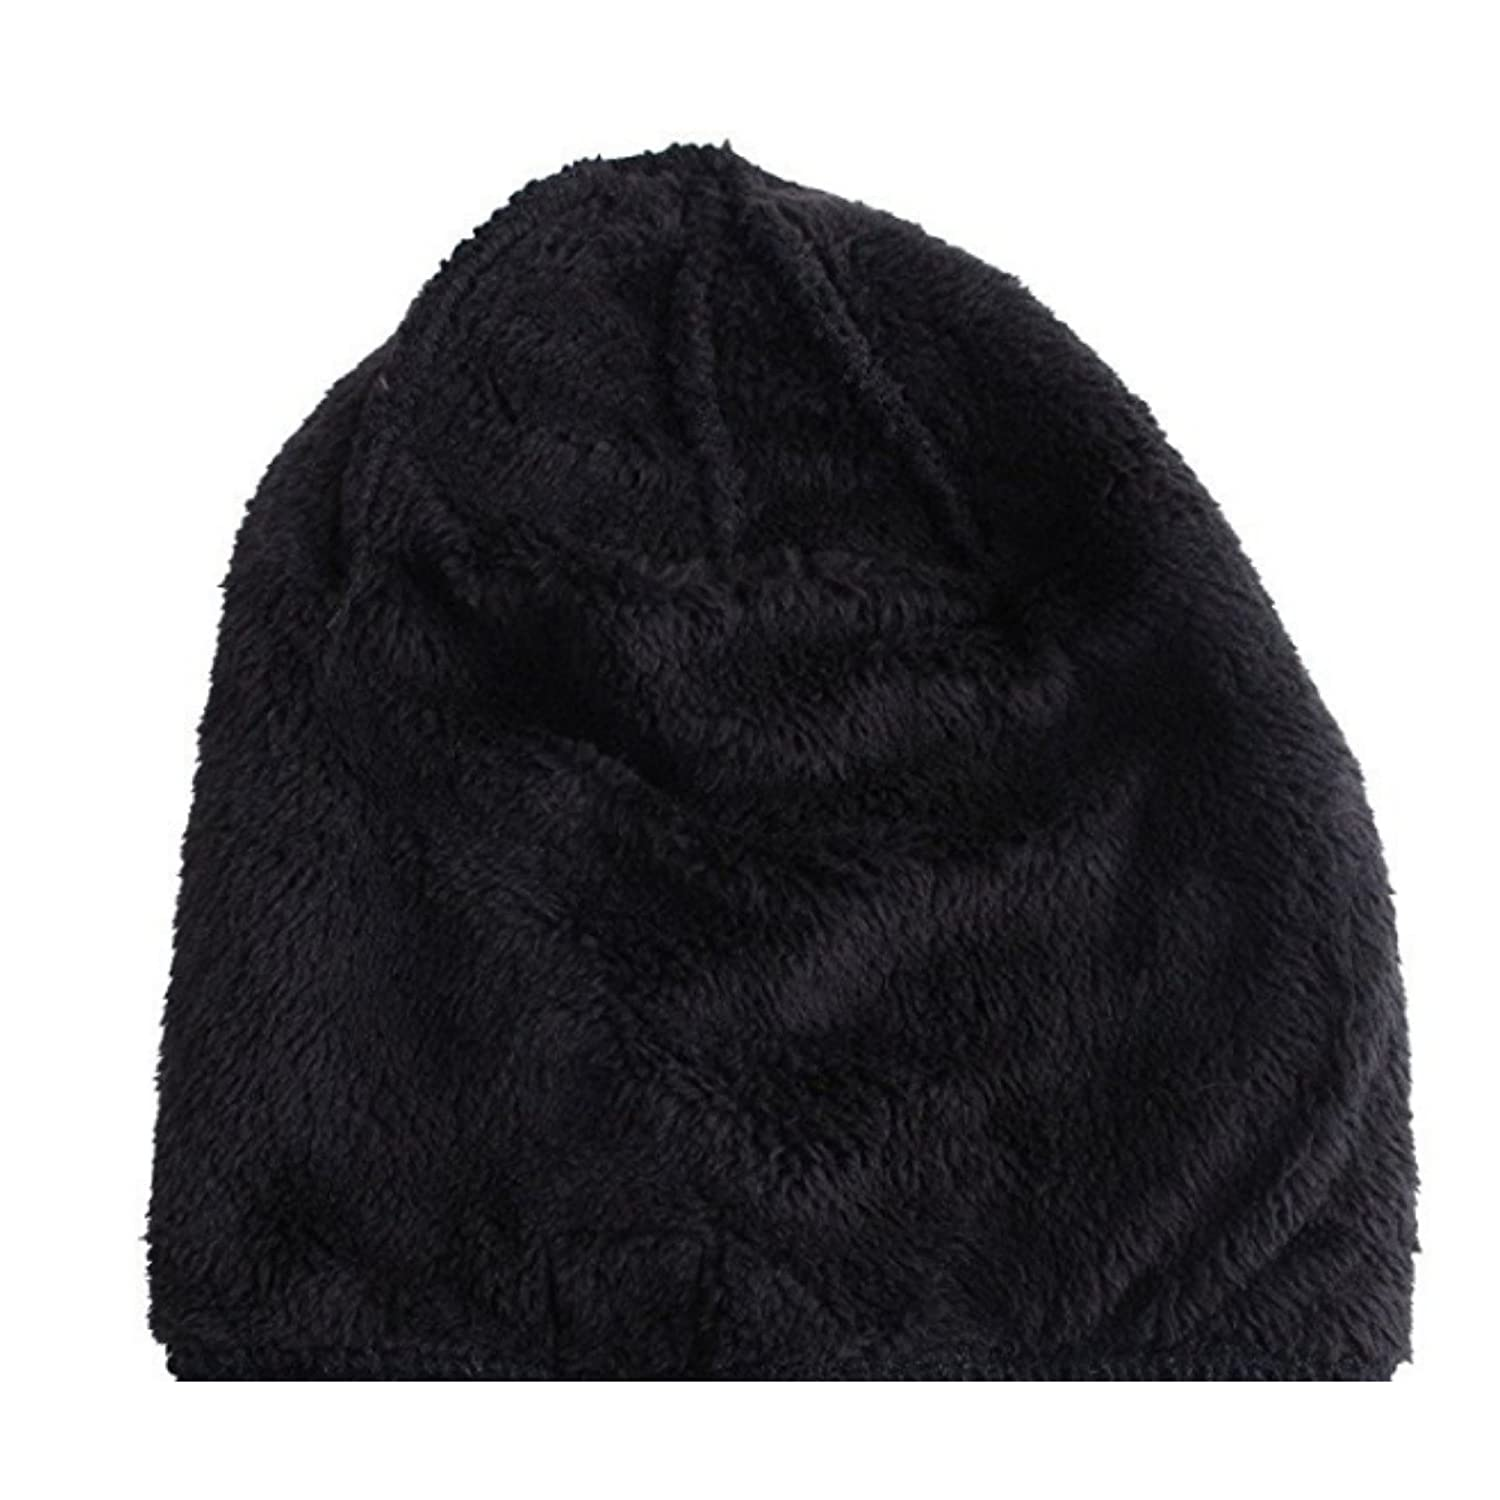 37067d05f Mens Insulated Thermal Fleece Lined Comfort Daily Soft Beanies Winter Hats